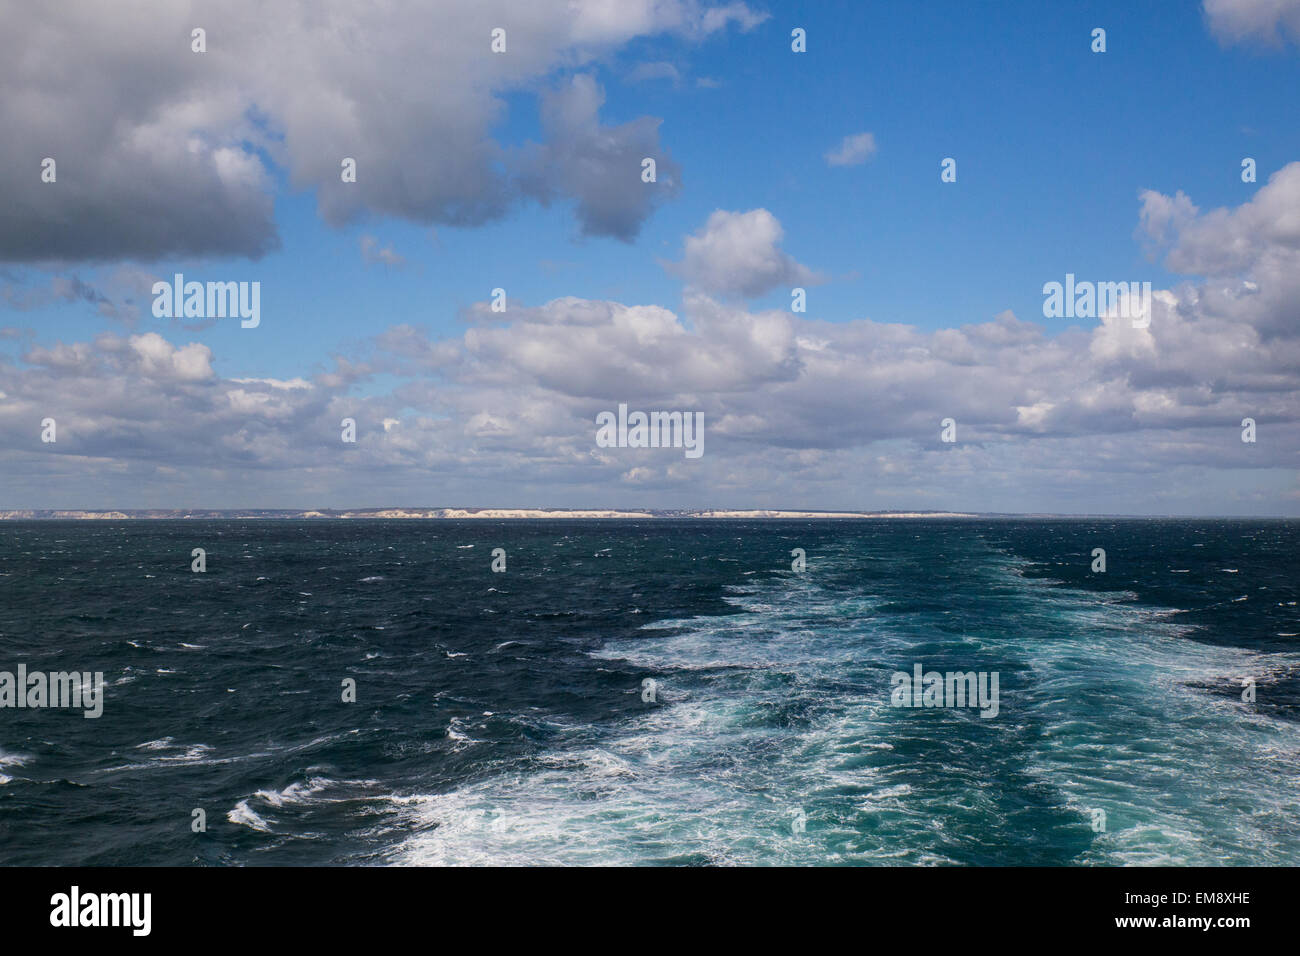 View of ship's wake from cross channel ferry between Dover and Dunkirk Stock Photo